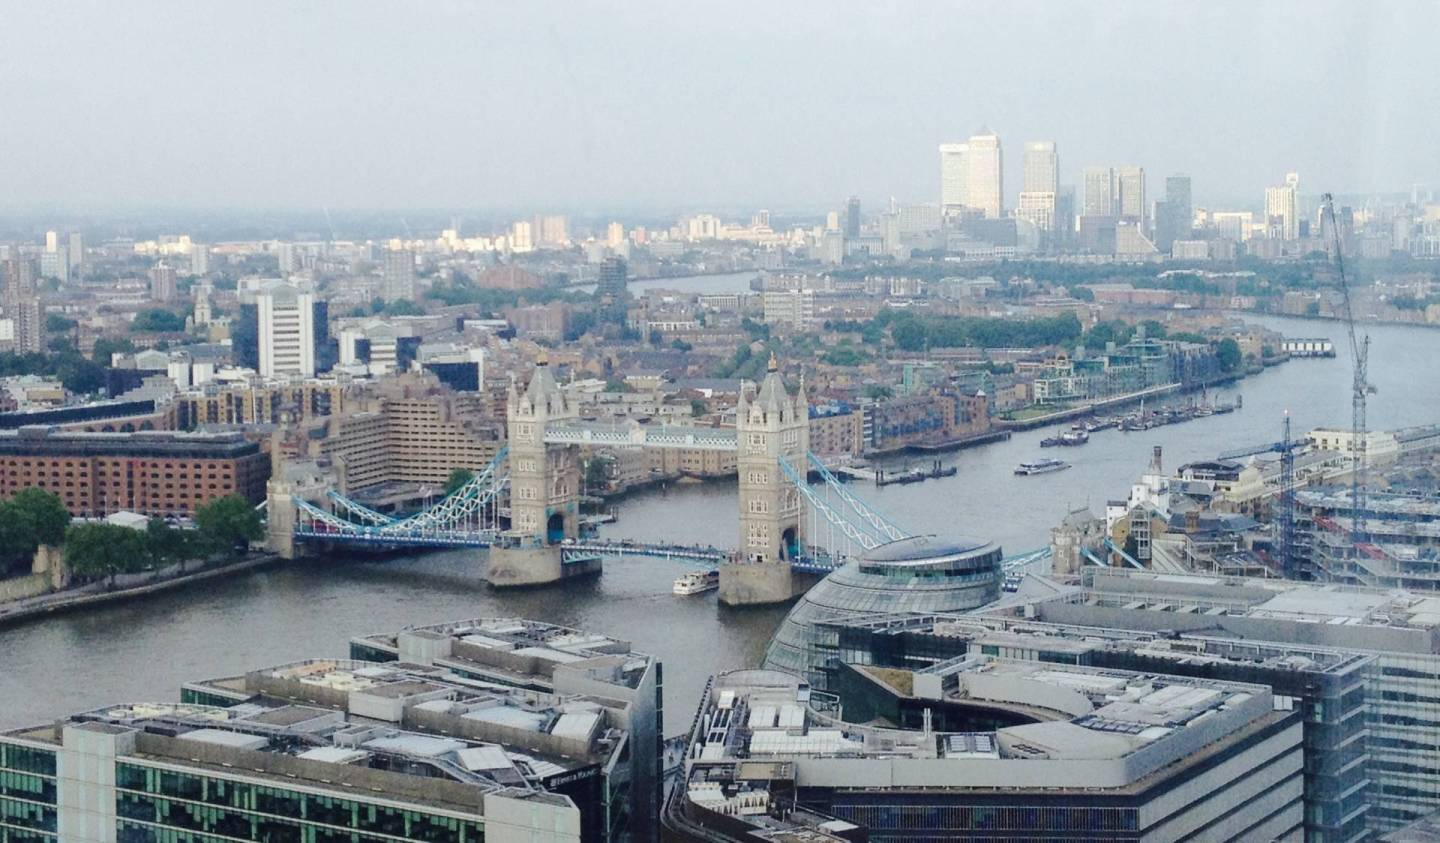 Vista-del-Tower-Bridge-a-Londra- dallo-Shard-un-italiana-a-Londra